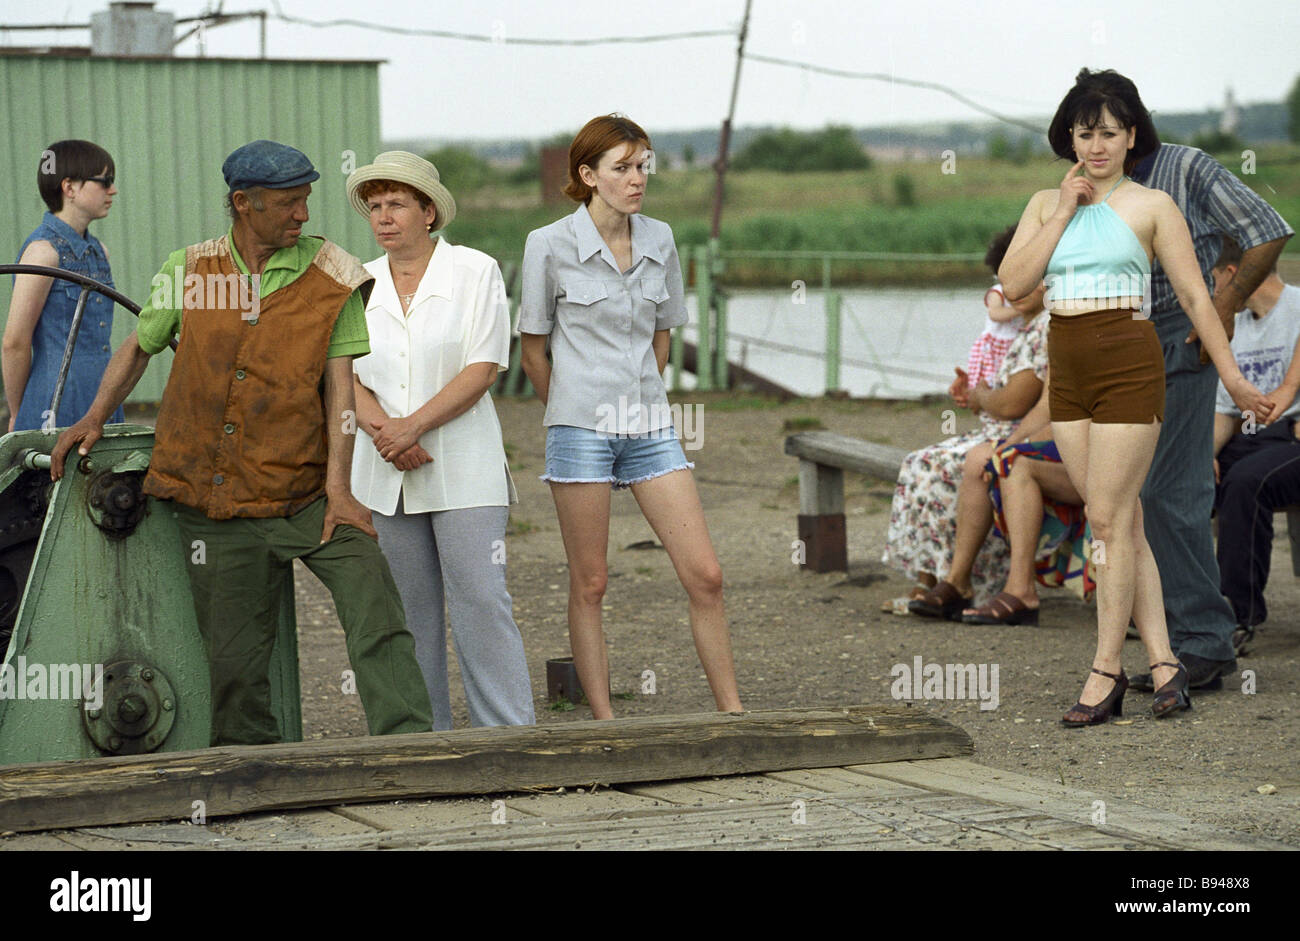 Residents of the town of Myshkin waiting for a ferry vessel - Stock Image